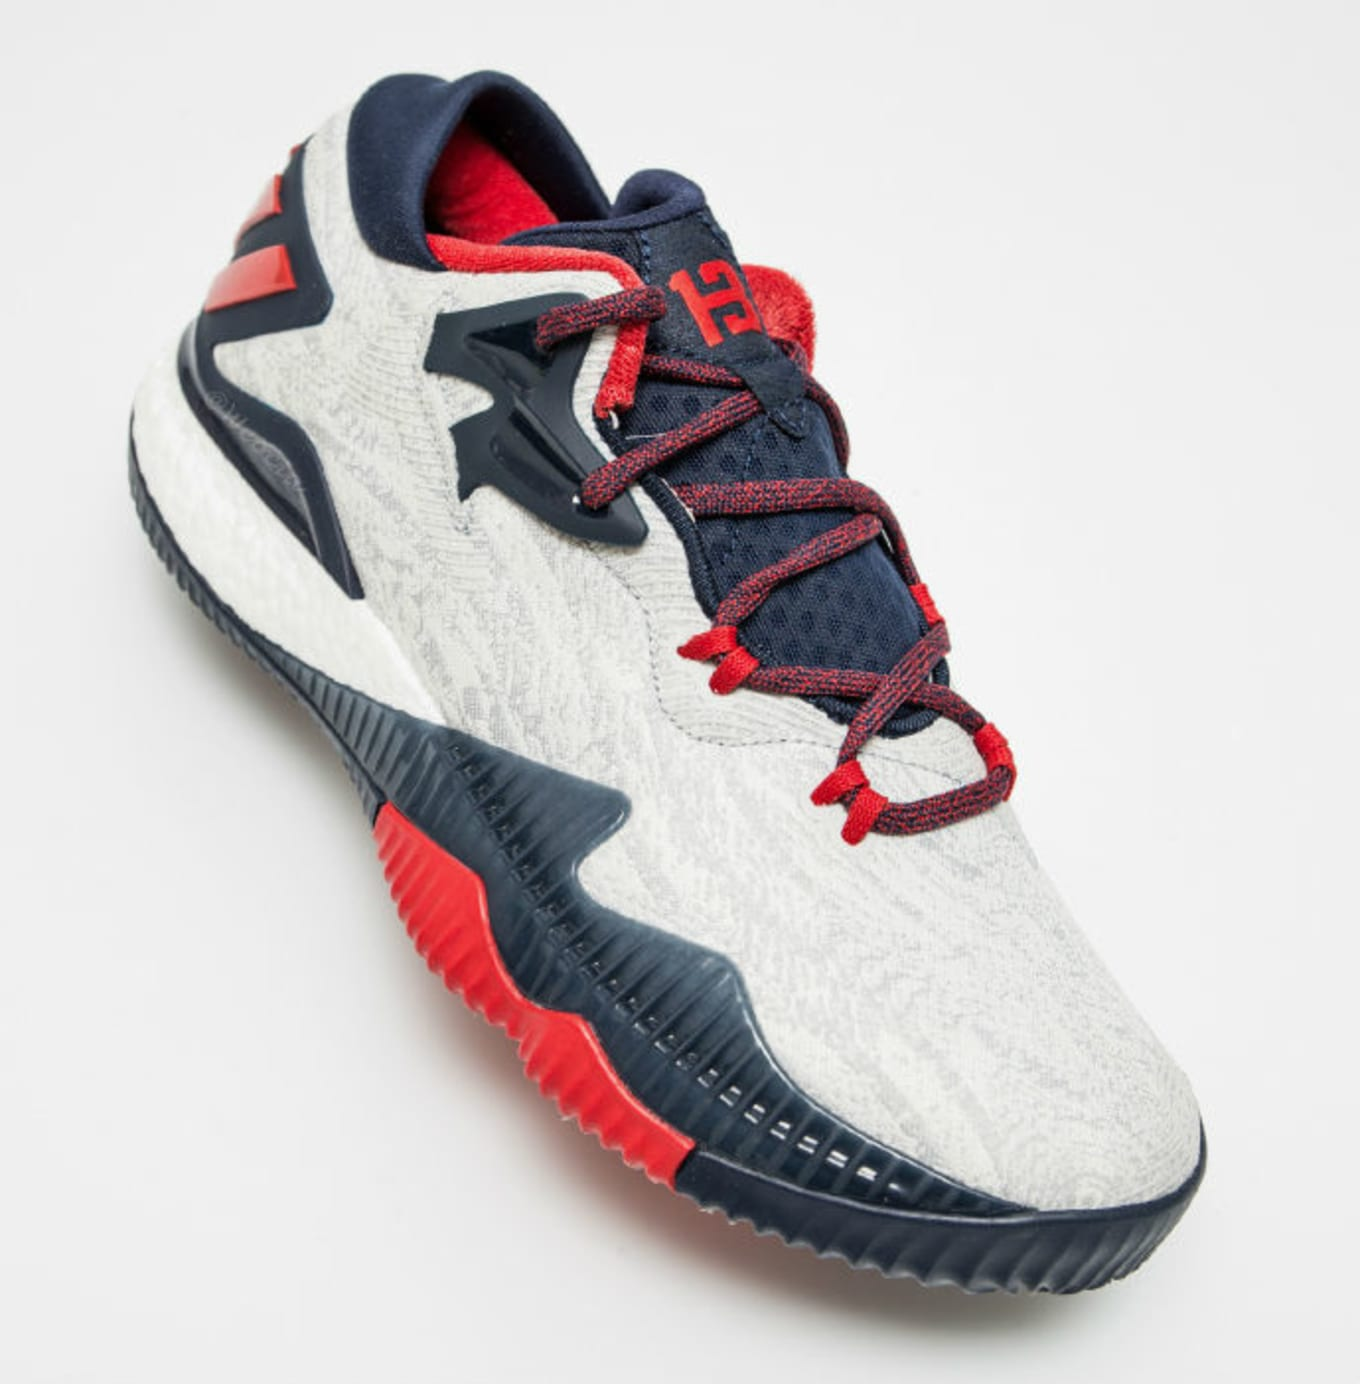 quality design 4f31d 54131 James Harden USA Olympic adidas Crazylight Boost 2016 (1)